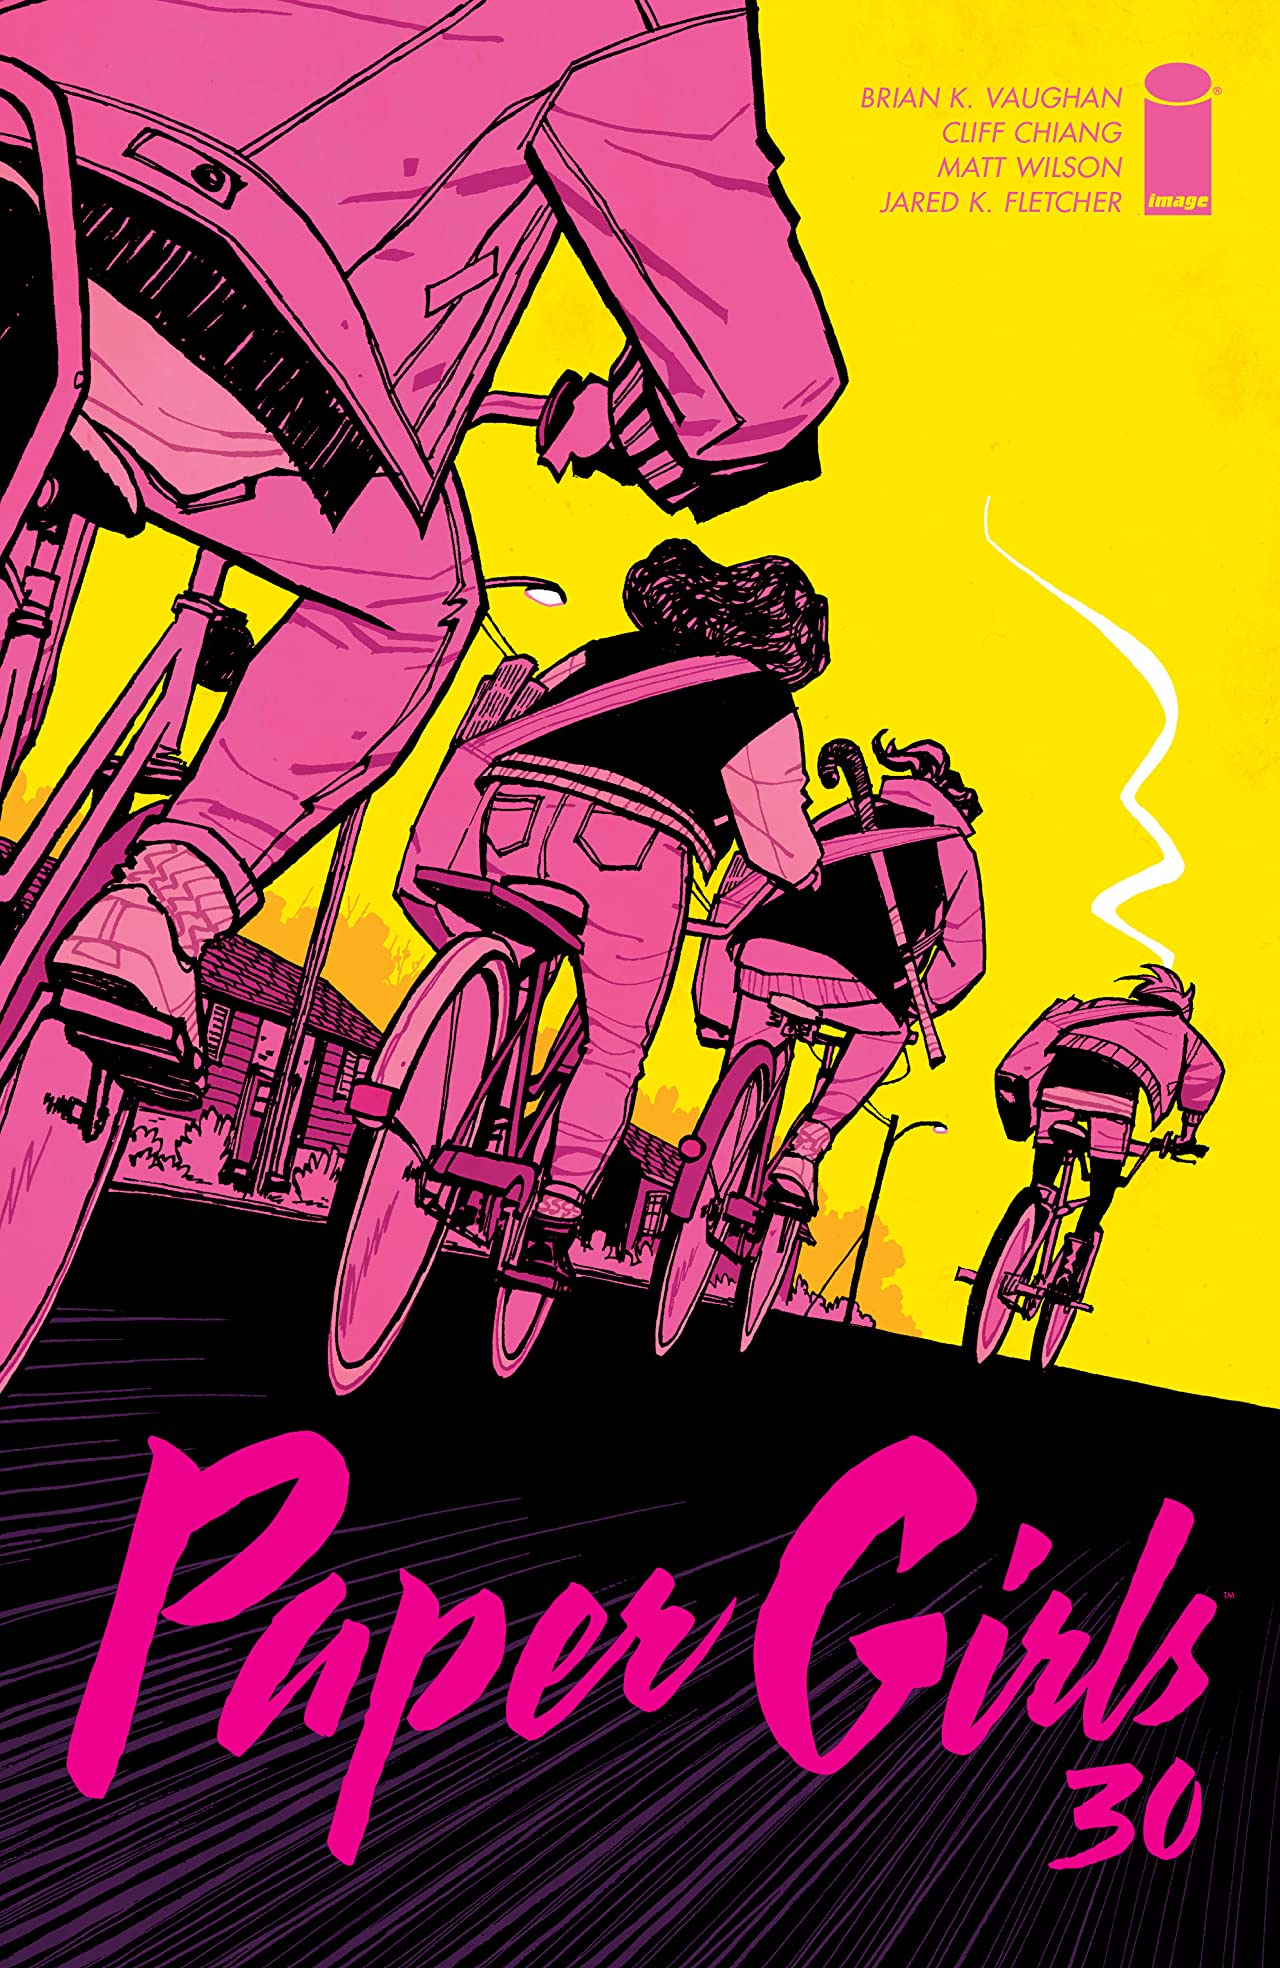 Paper Girls No.30